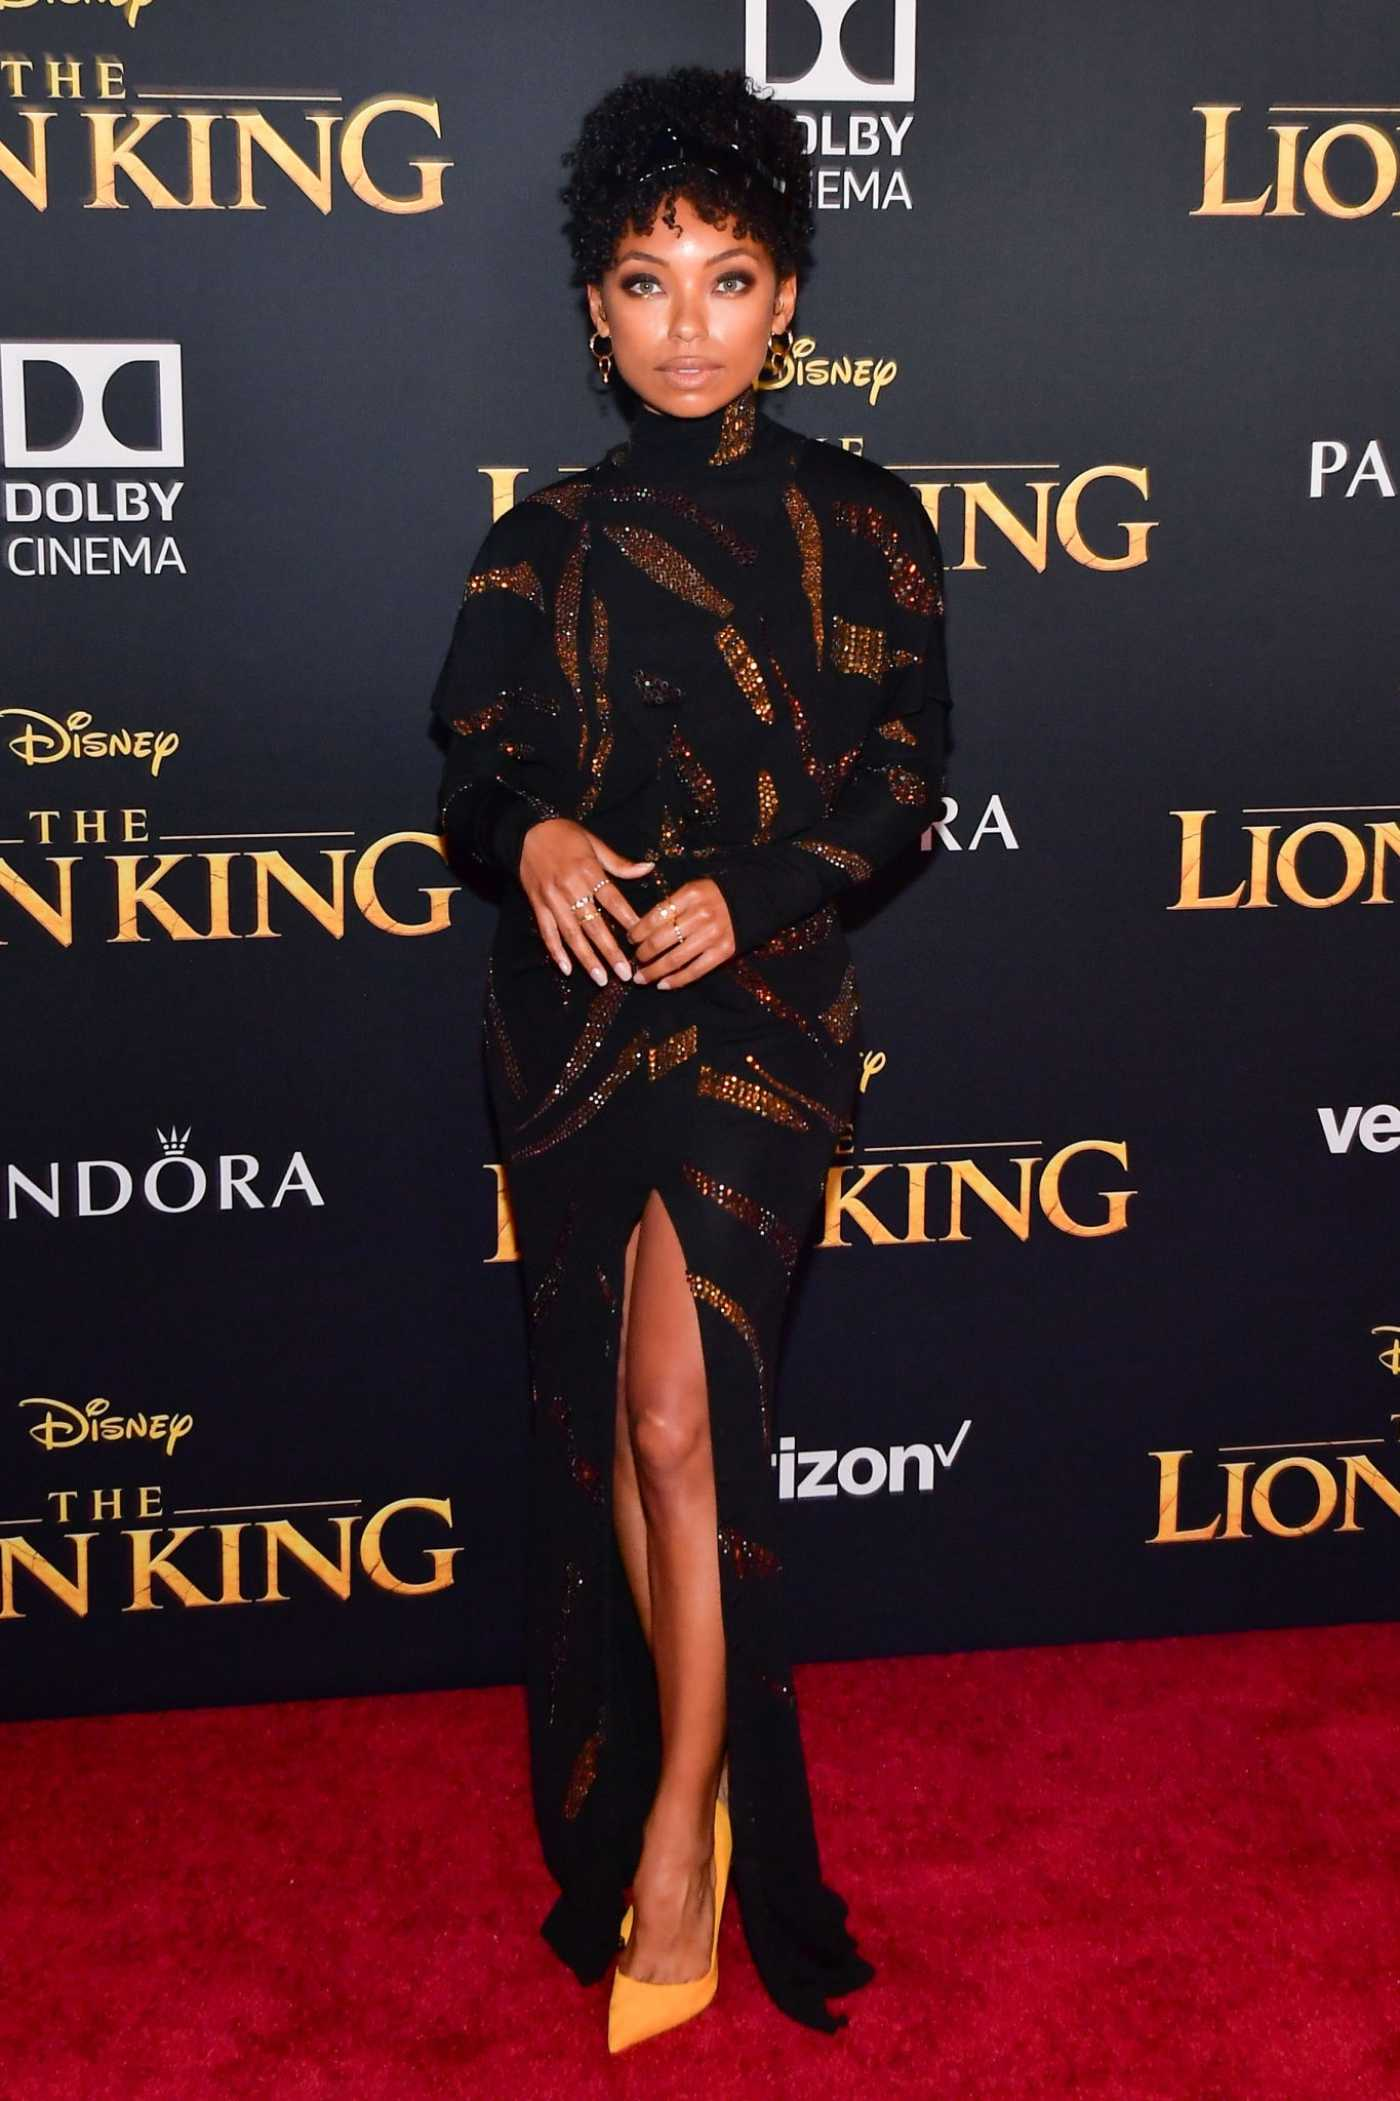 Logan Browning Attends The Lion King Premiere at Dolby Theatre in Hollywood 07/09/2019